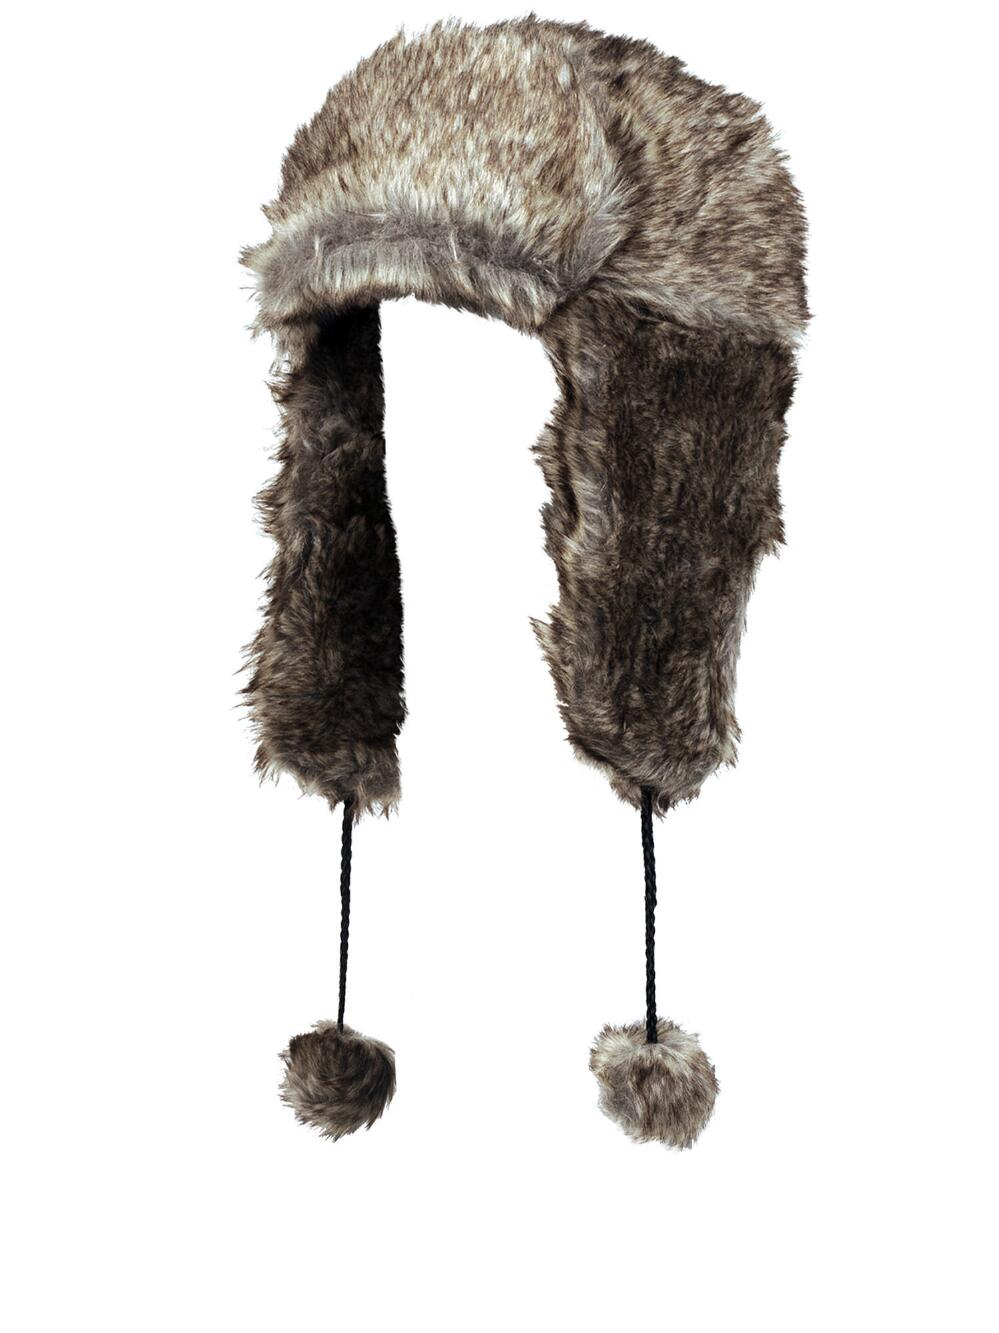 UNISEX TRAPPER LEATHER LOOK FAUX FUR HAT IN BLACK /& BROWN SIZE L-XL